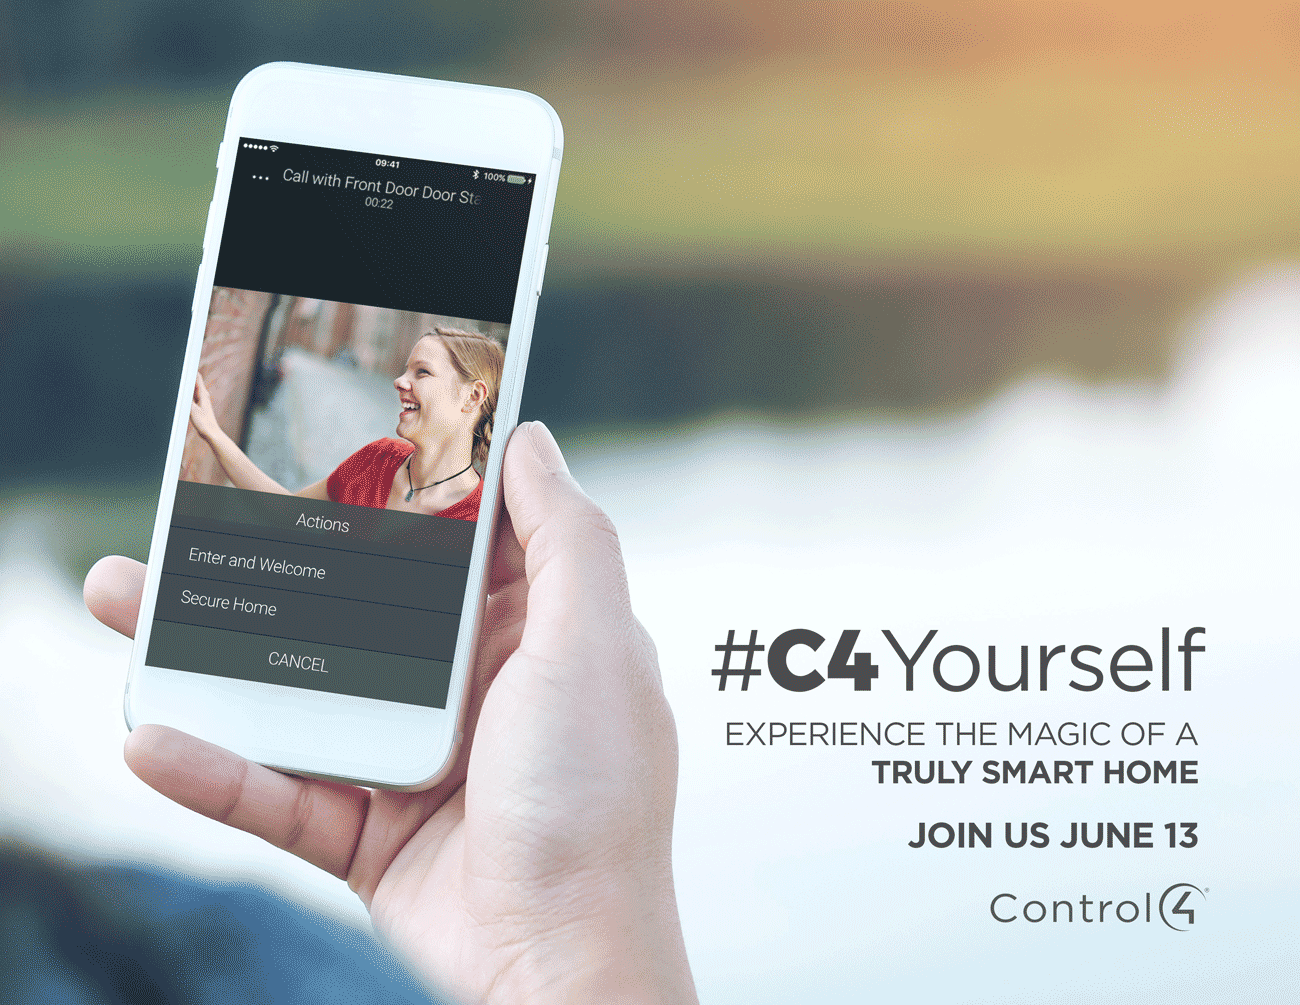 What is C4Yourself Day?: c4y, c4yourself, experience, hands-on, showroom, test, try, try-before-you-buy,